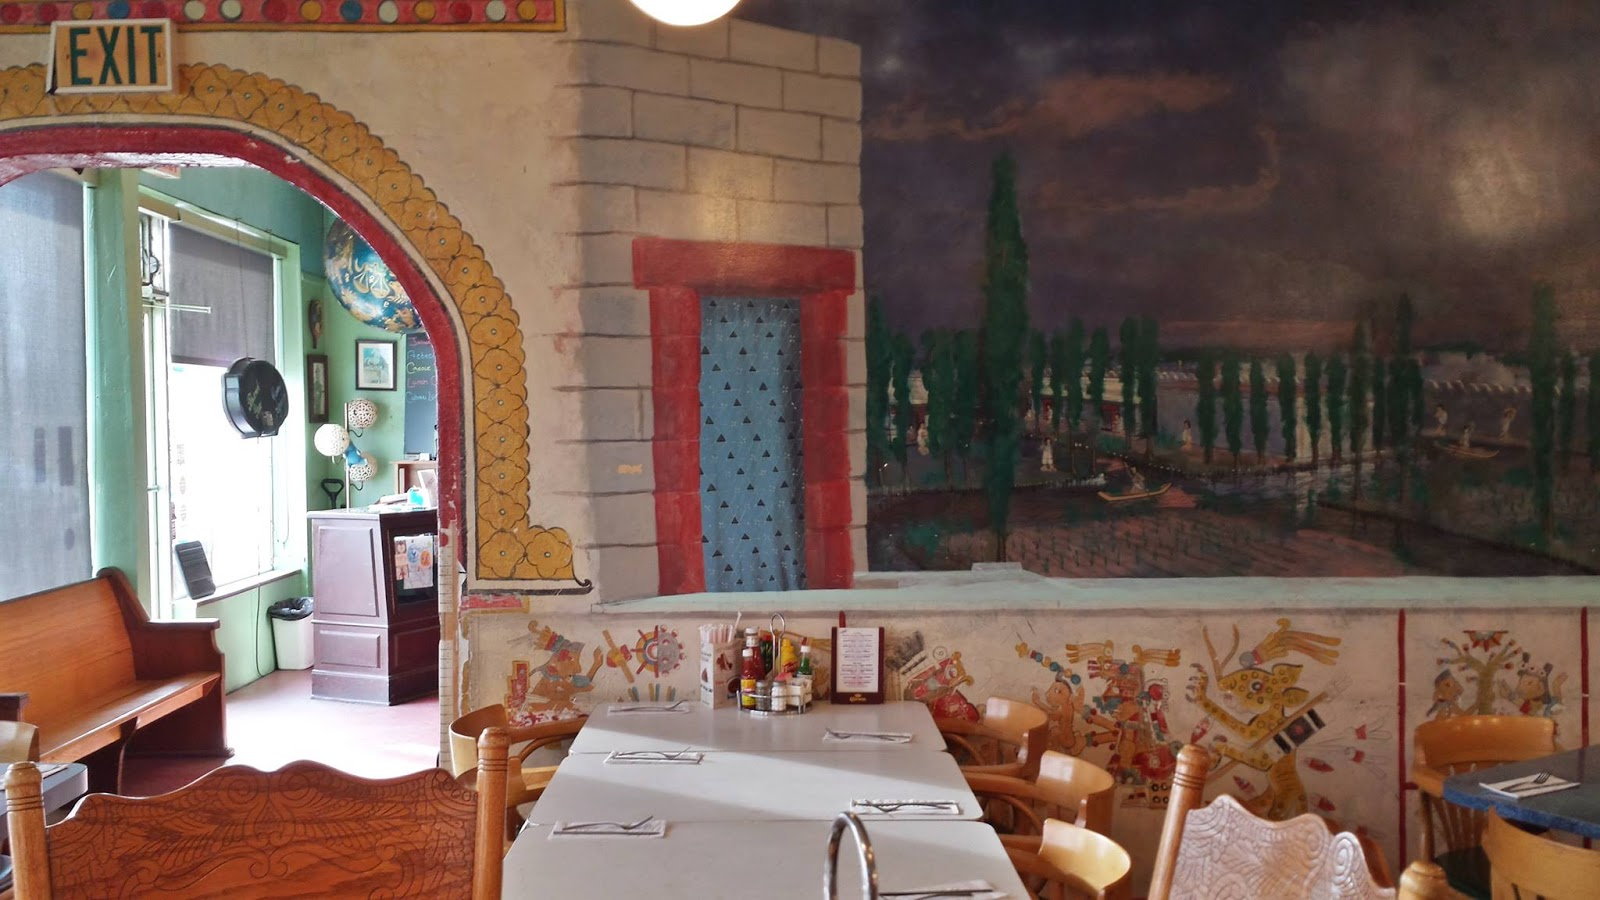 Starliner Diner interior with paintings on the walls